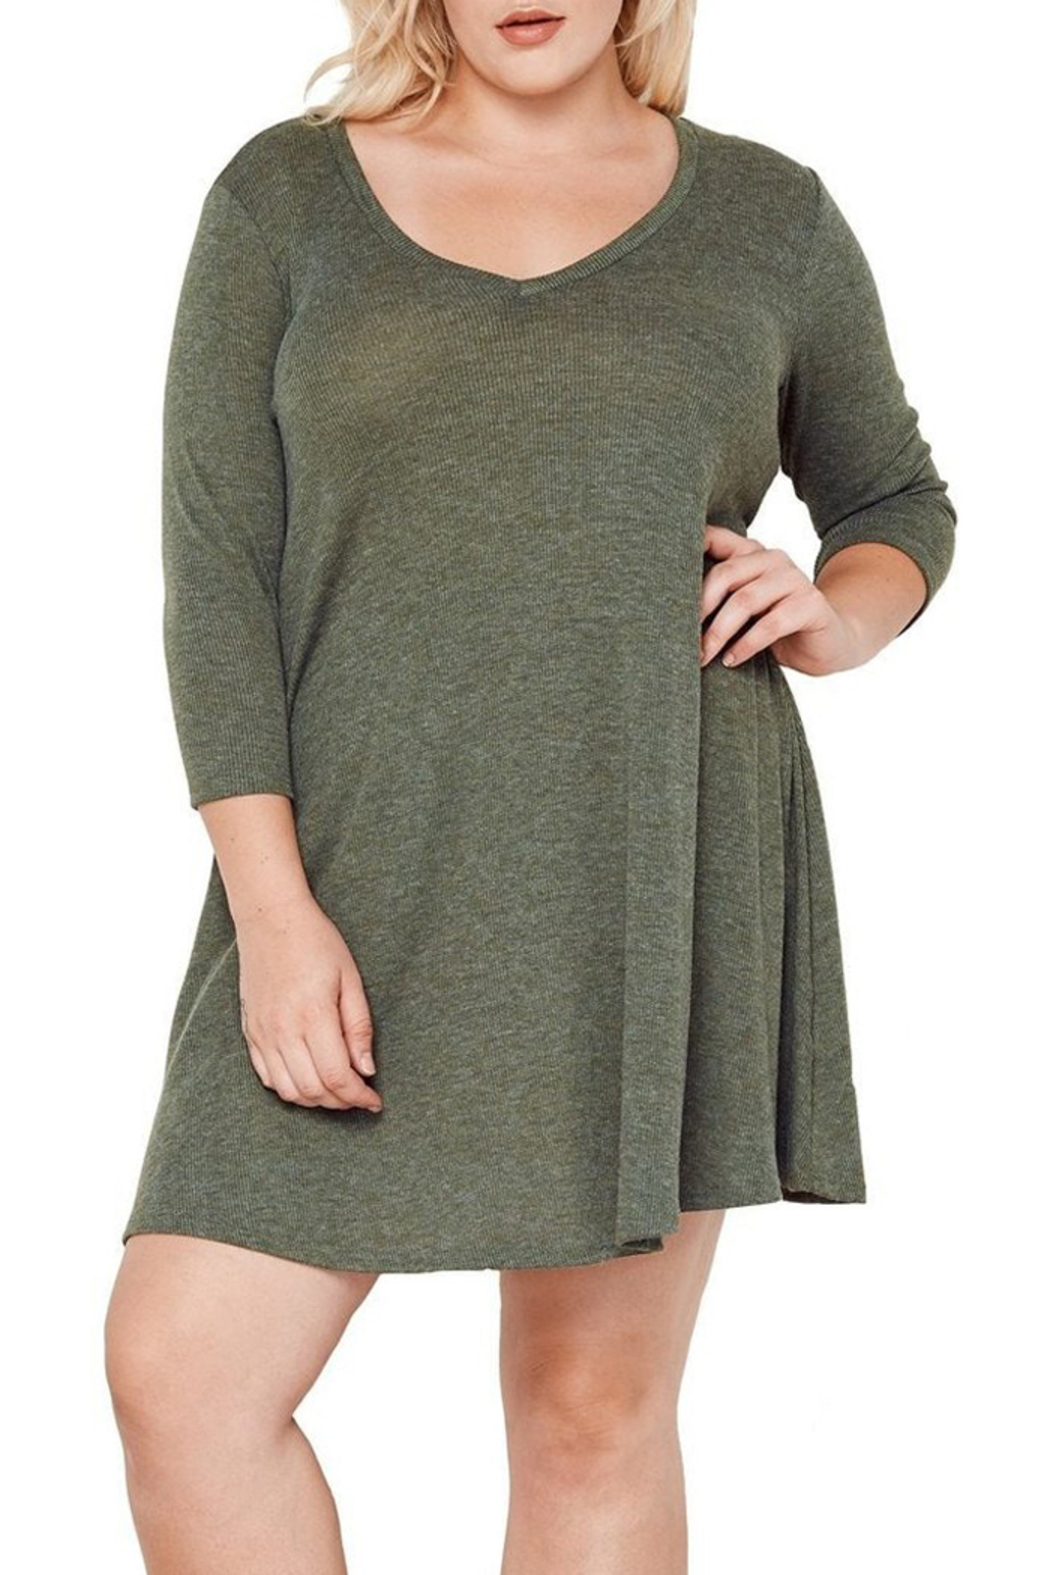 MaiTai Olive Ribbed Dress - Back Cropped Image